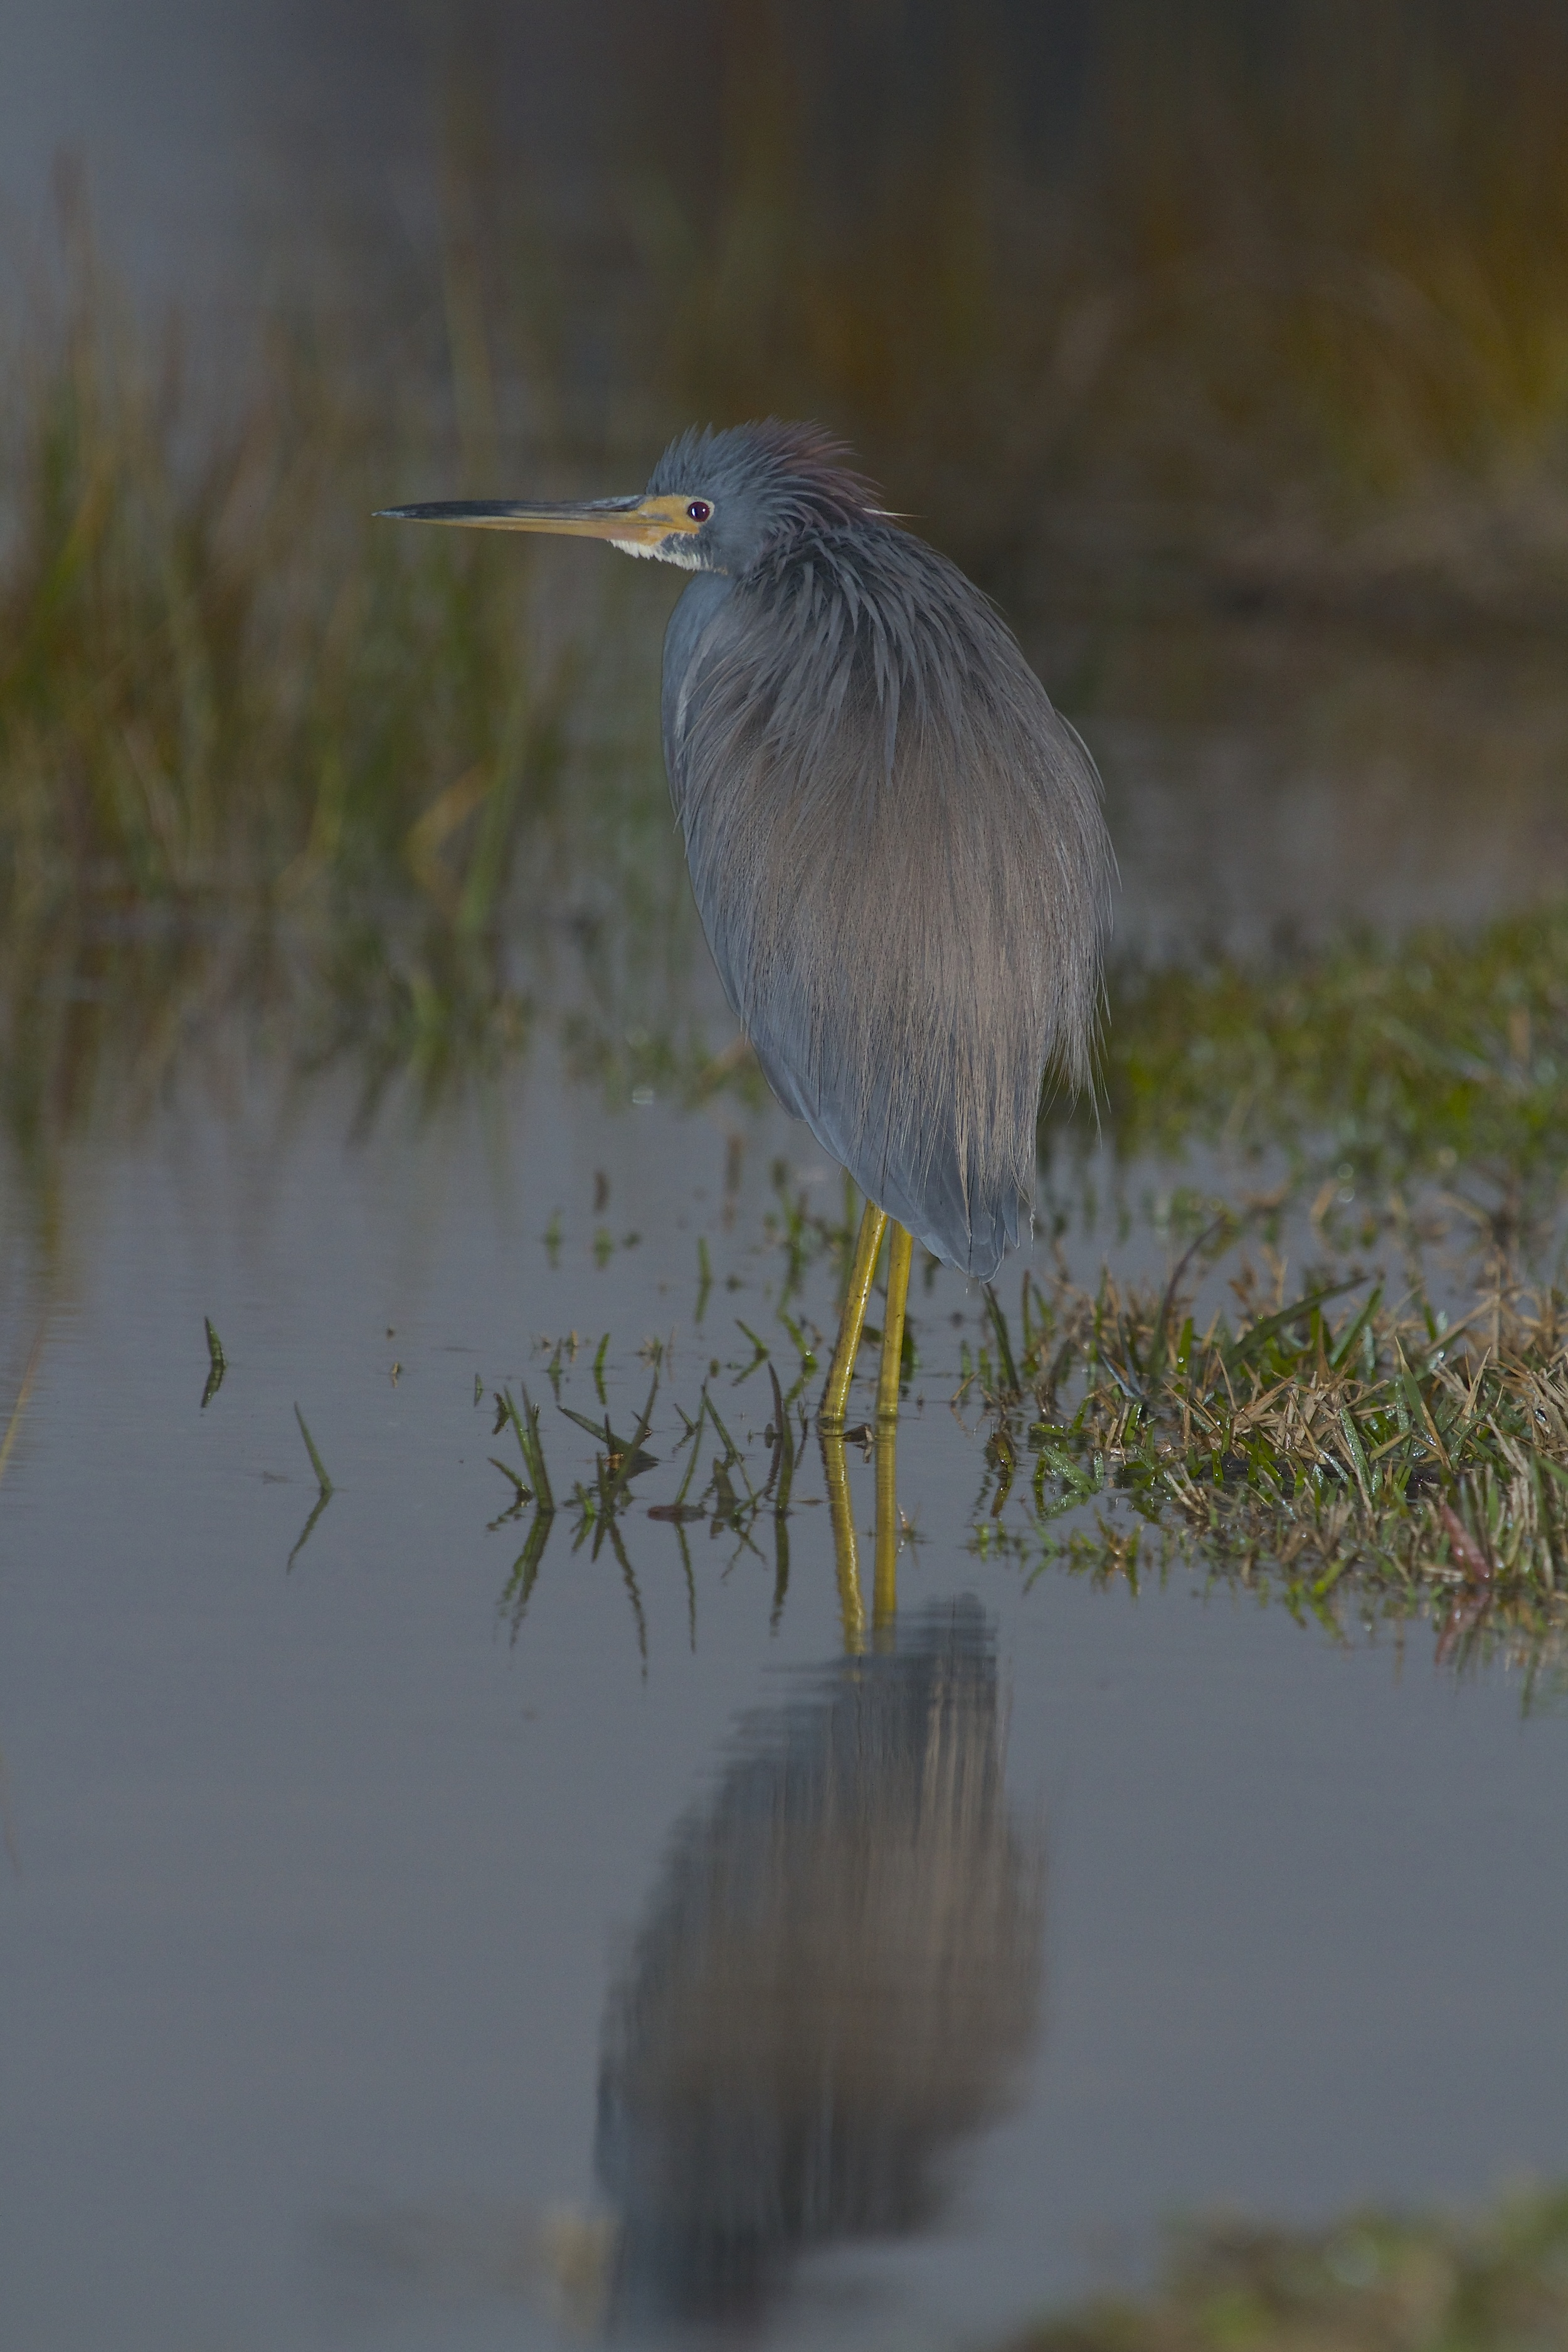 Tricolored Heron reflects in the predawn light.